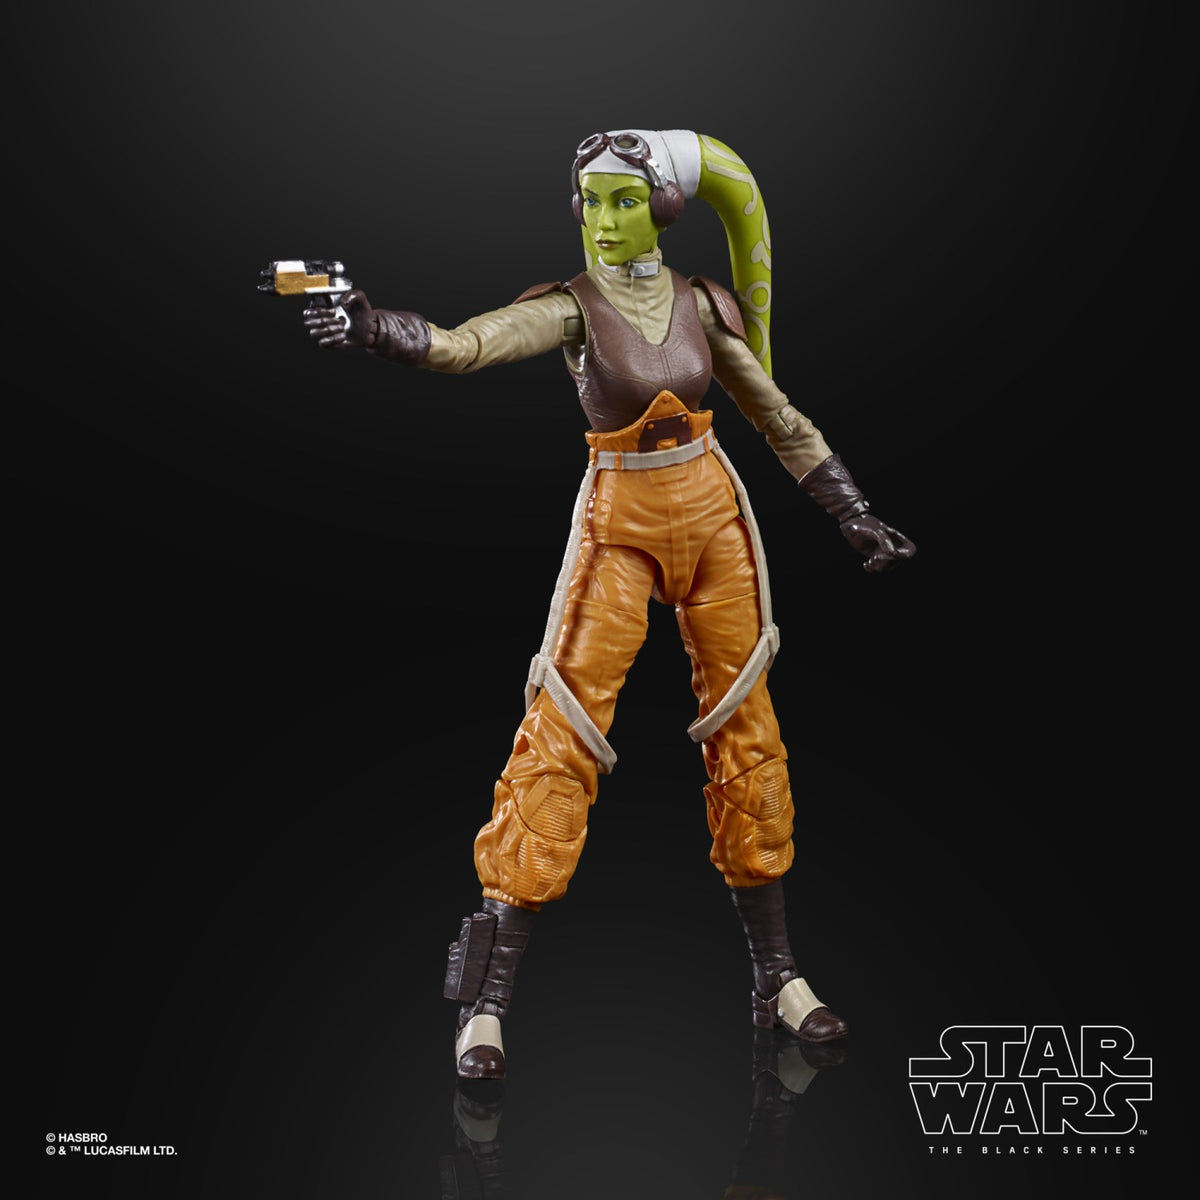 Star Wars Rebels Hera Syndulla The Black Series 6Inch Action Figure NEW